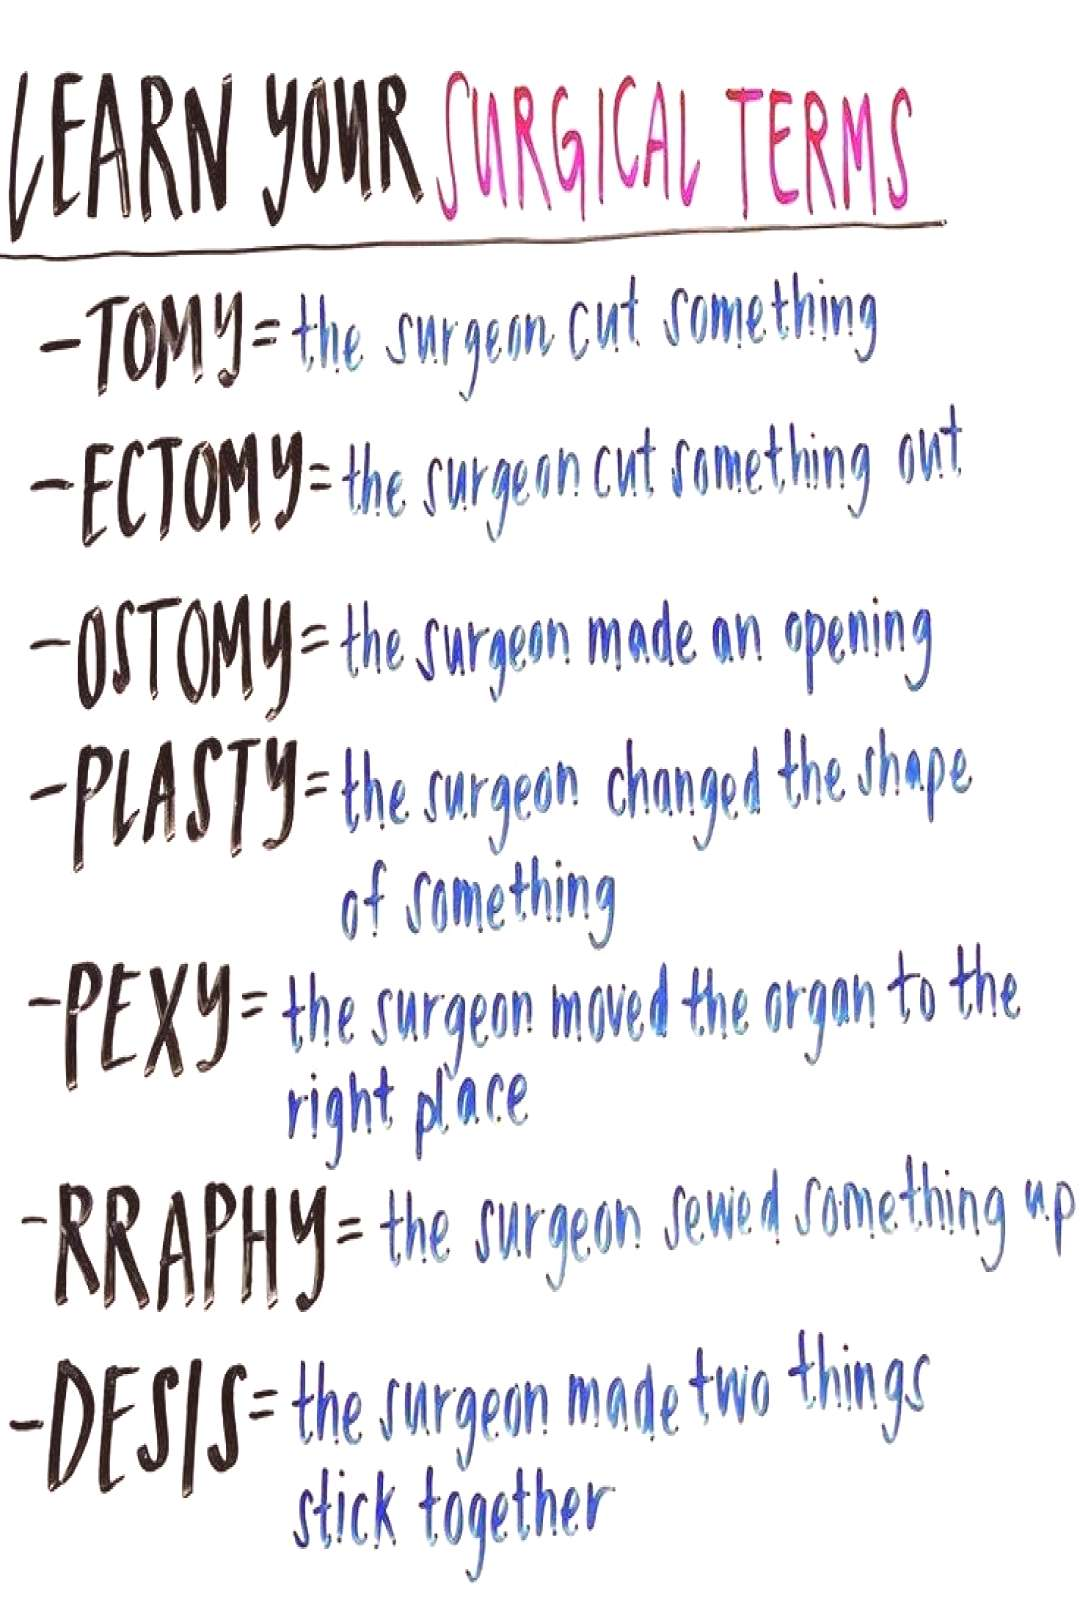 Easy way to learn surgical terms! . . . . . .